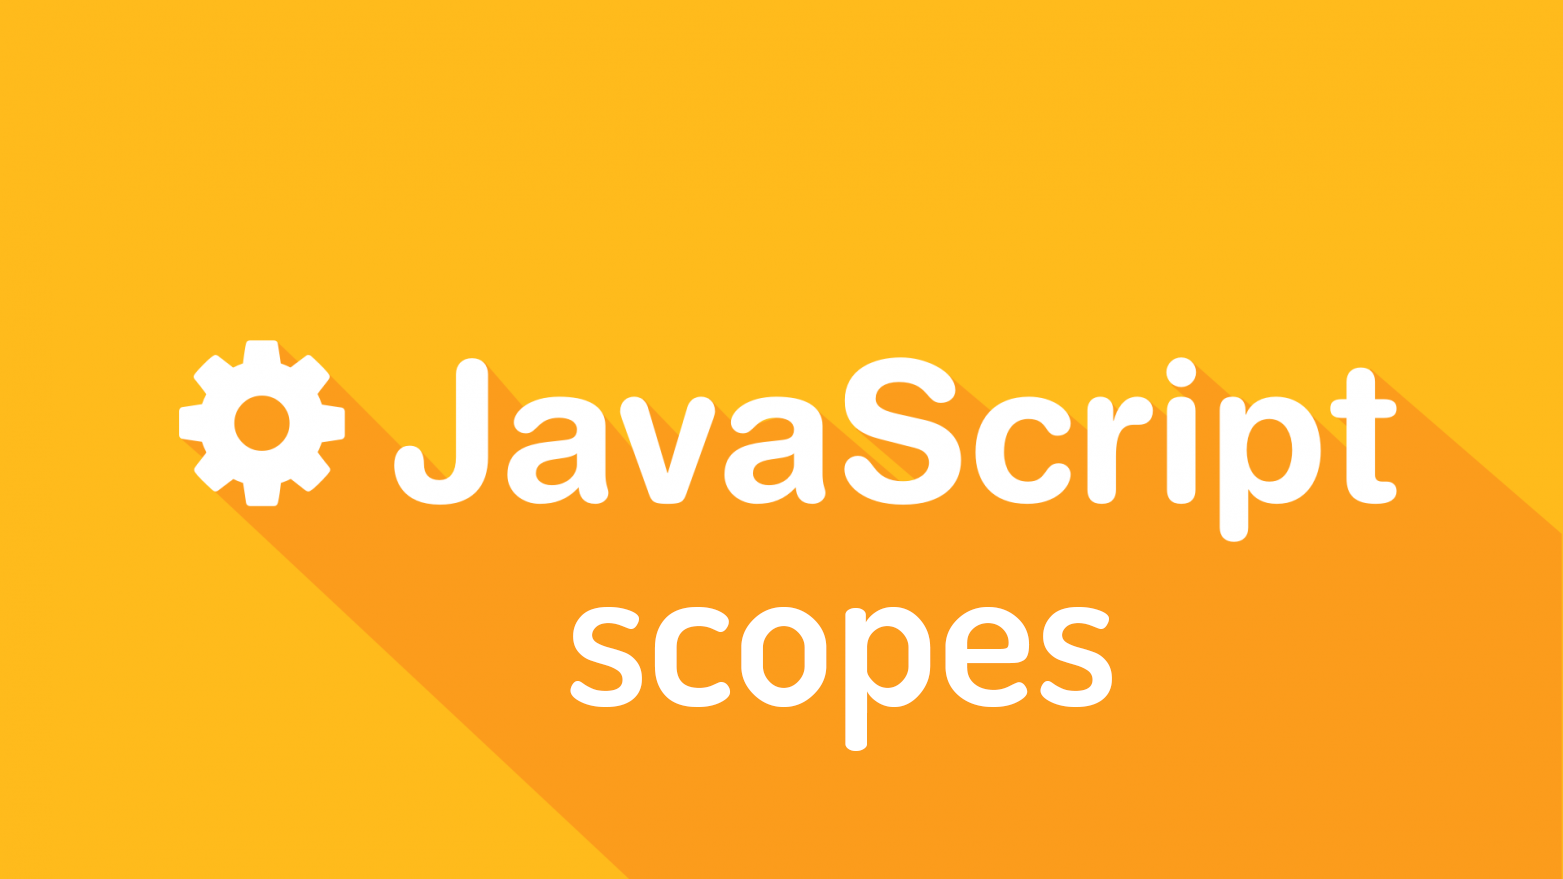 Javascript: Scope trong javascript hoạt động thế nào?